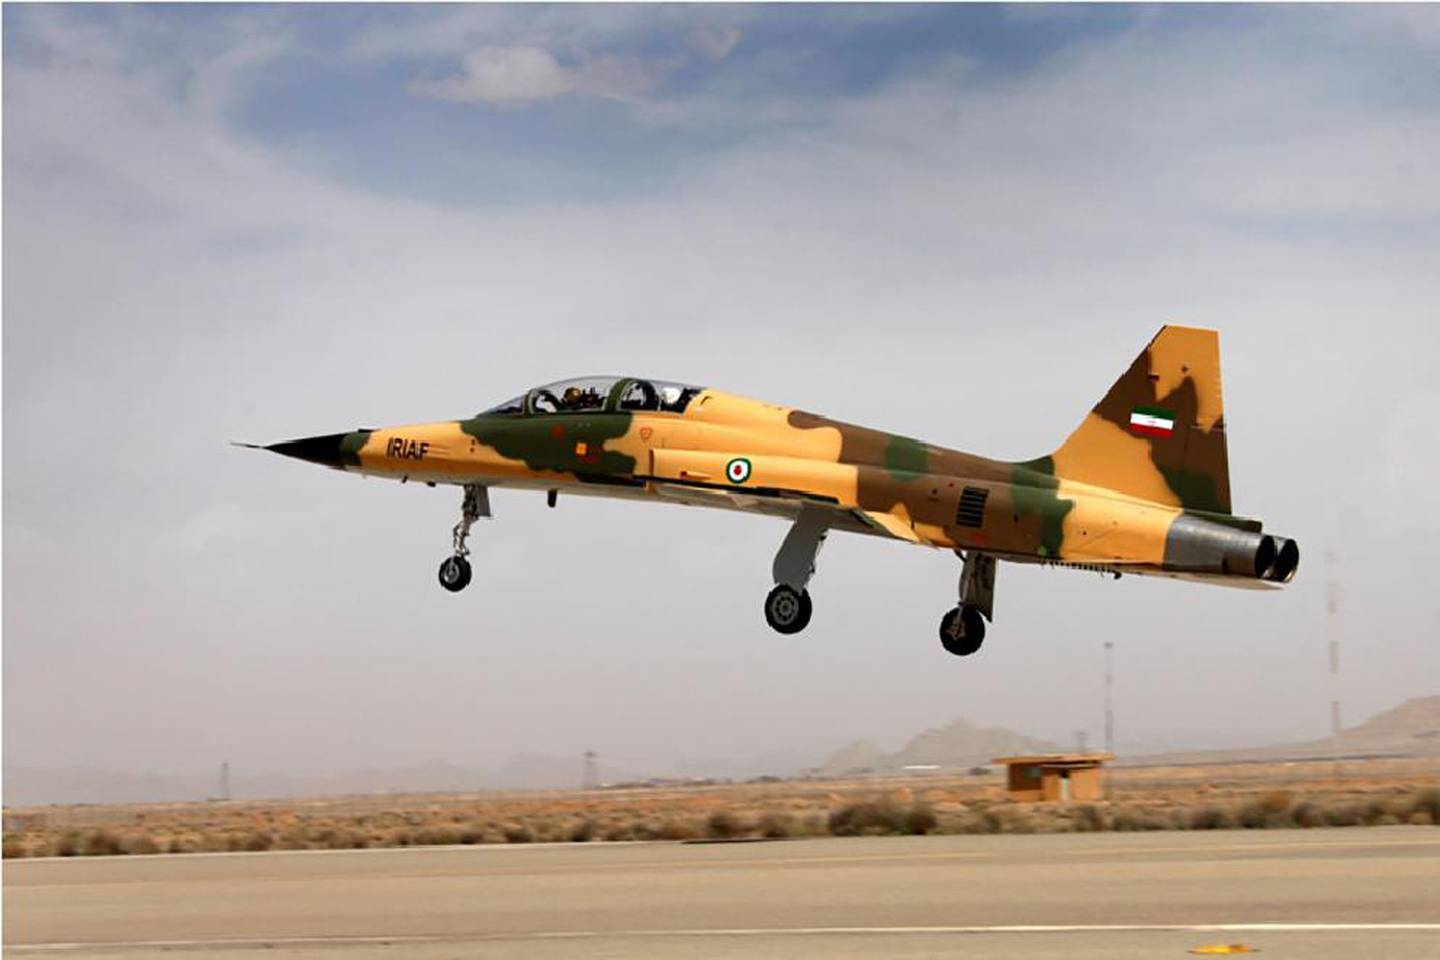 """A handout picture released by Iran's Defence Ministry on August 21, 2018, shows the  """"Kowsar"""" domestic fighter jet, a fourth-generation fighter, with """"advanced avionics"""" and multi-purpose radar, which the local Tasnim news agency said was """"100-percent indigenously made"""". - Iran unveiled its first domestic fighter jet at a defence show in the capital Tehran today. (Photo by HO / IRANIAN DEFENCE MINISTRY / AFP)"""